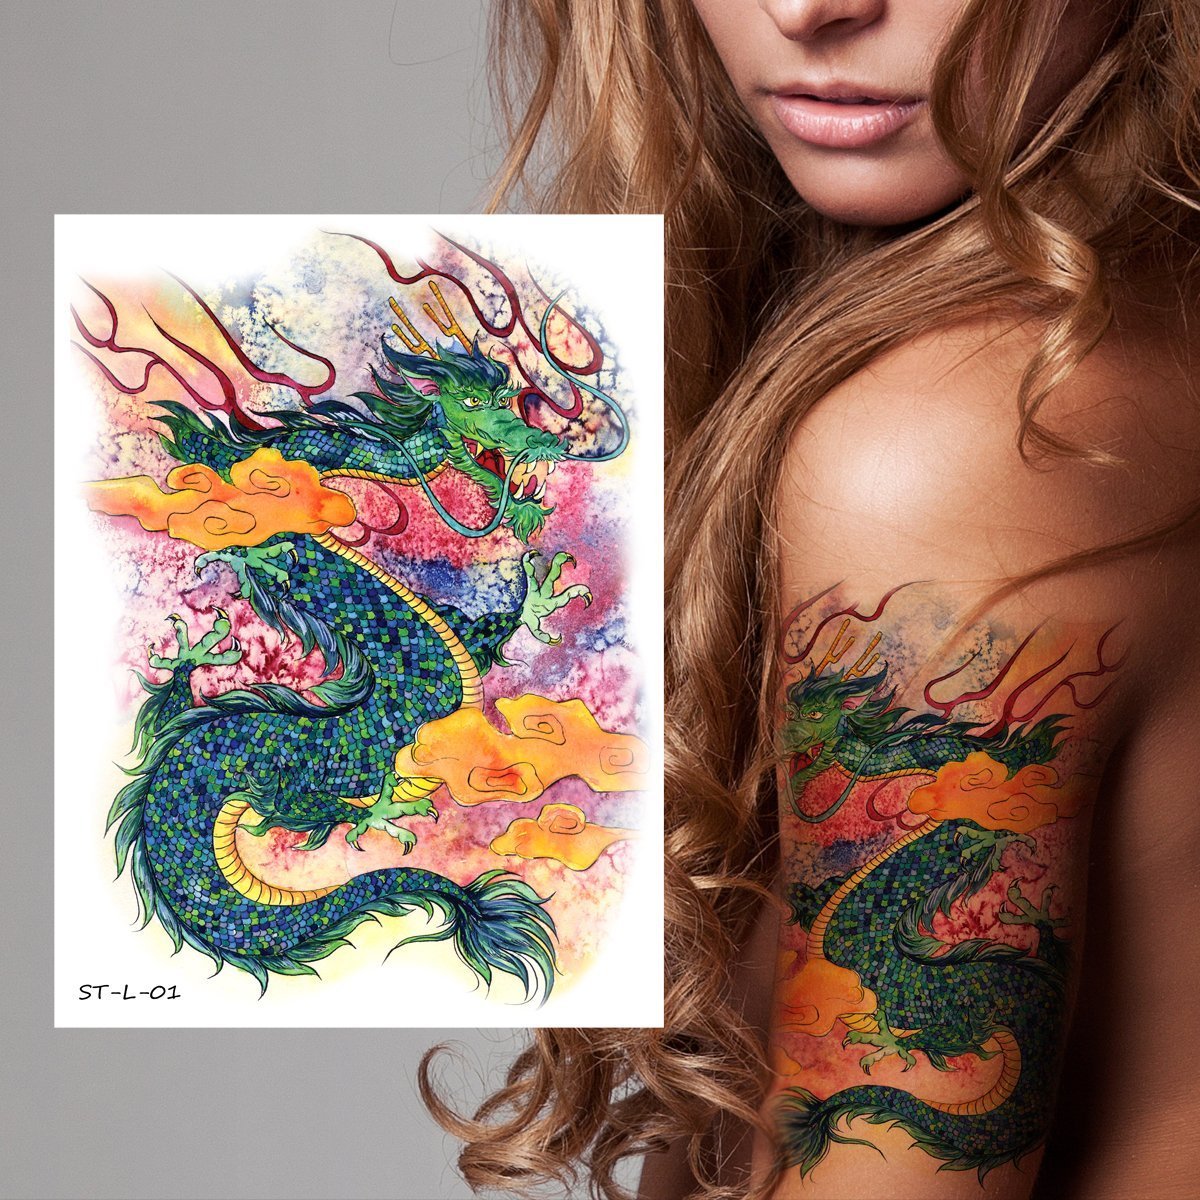 f9ee6c47b Get Quotations · Supperb Temporary Tattoos - Gorgeous Green Dragon in  Clouds, Dragon Temporary Tattoos